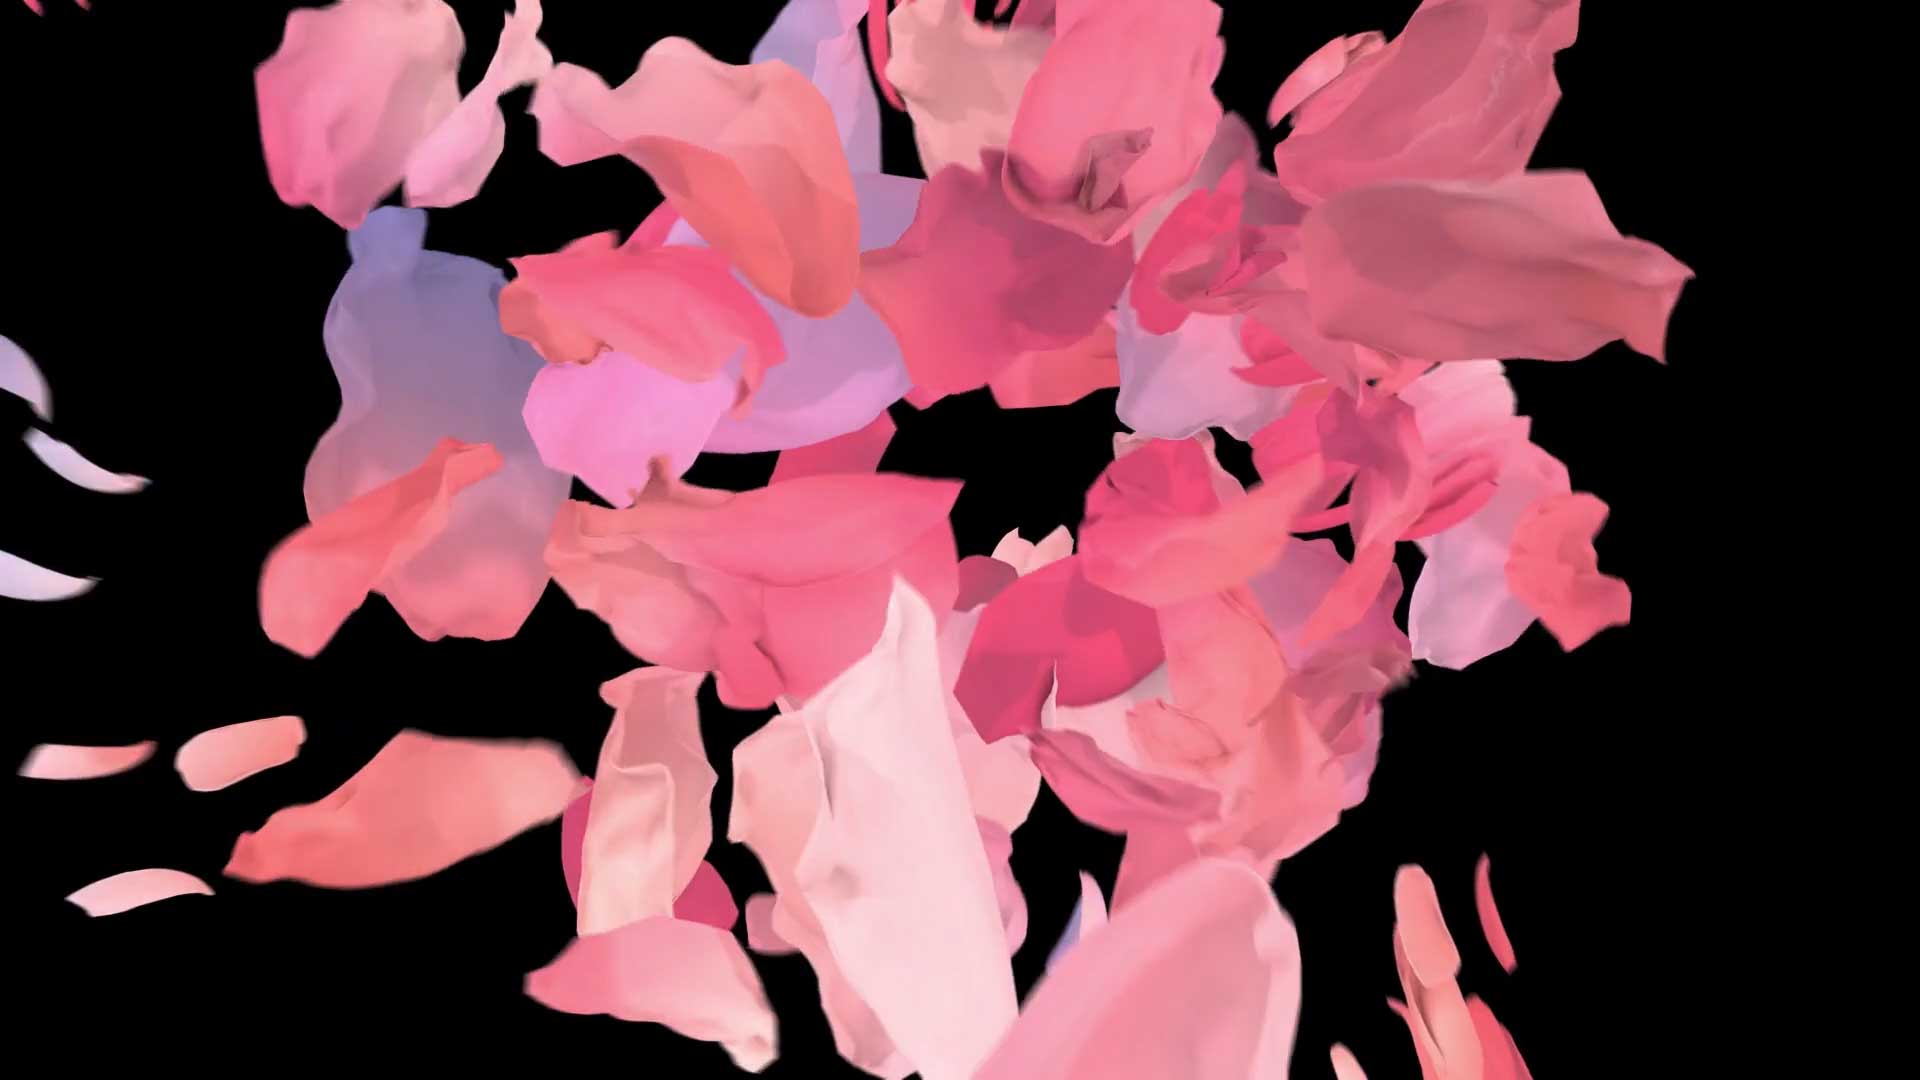 Prada flowers logo design cgi fashion film abstract flowers color